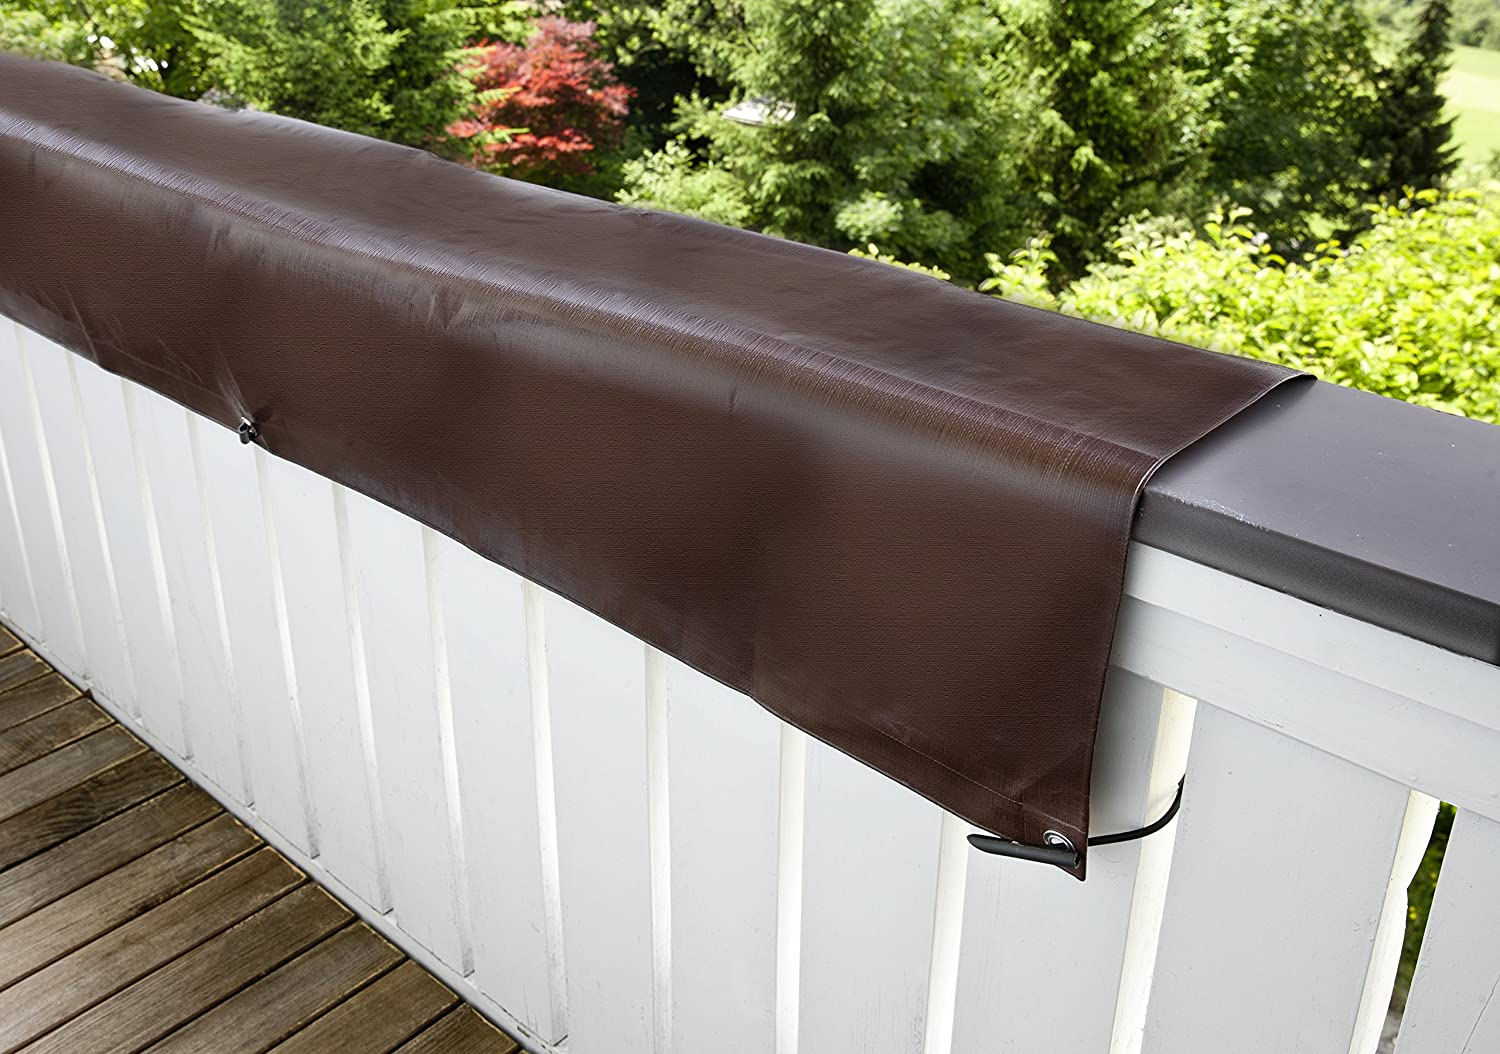 Windhager tarpaulin balcony cover 0 8 x 5 m 210 g m2 brown